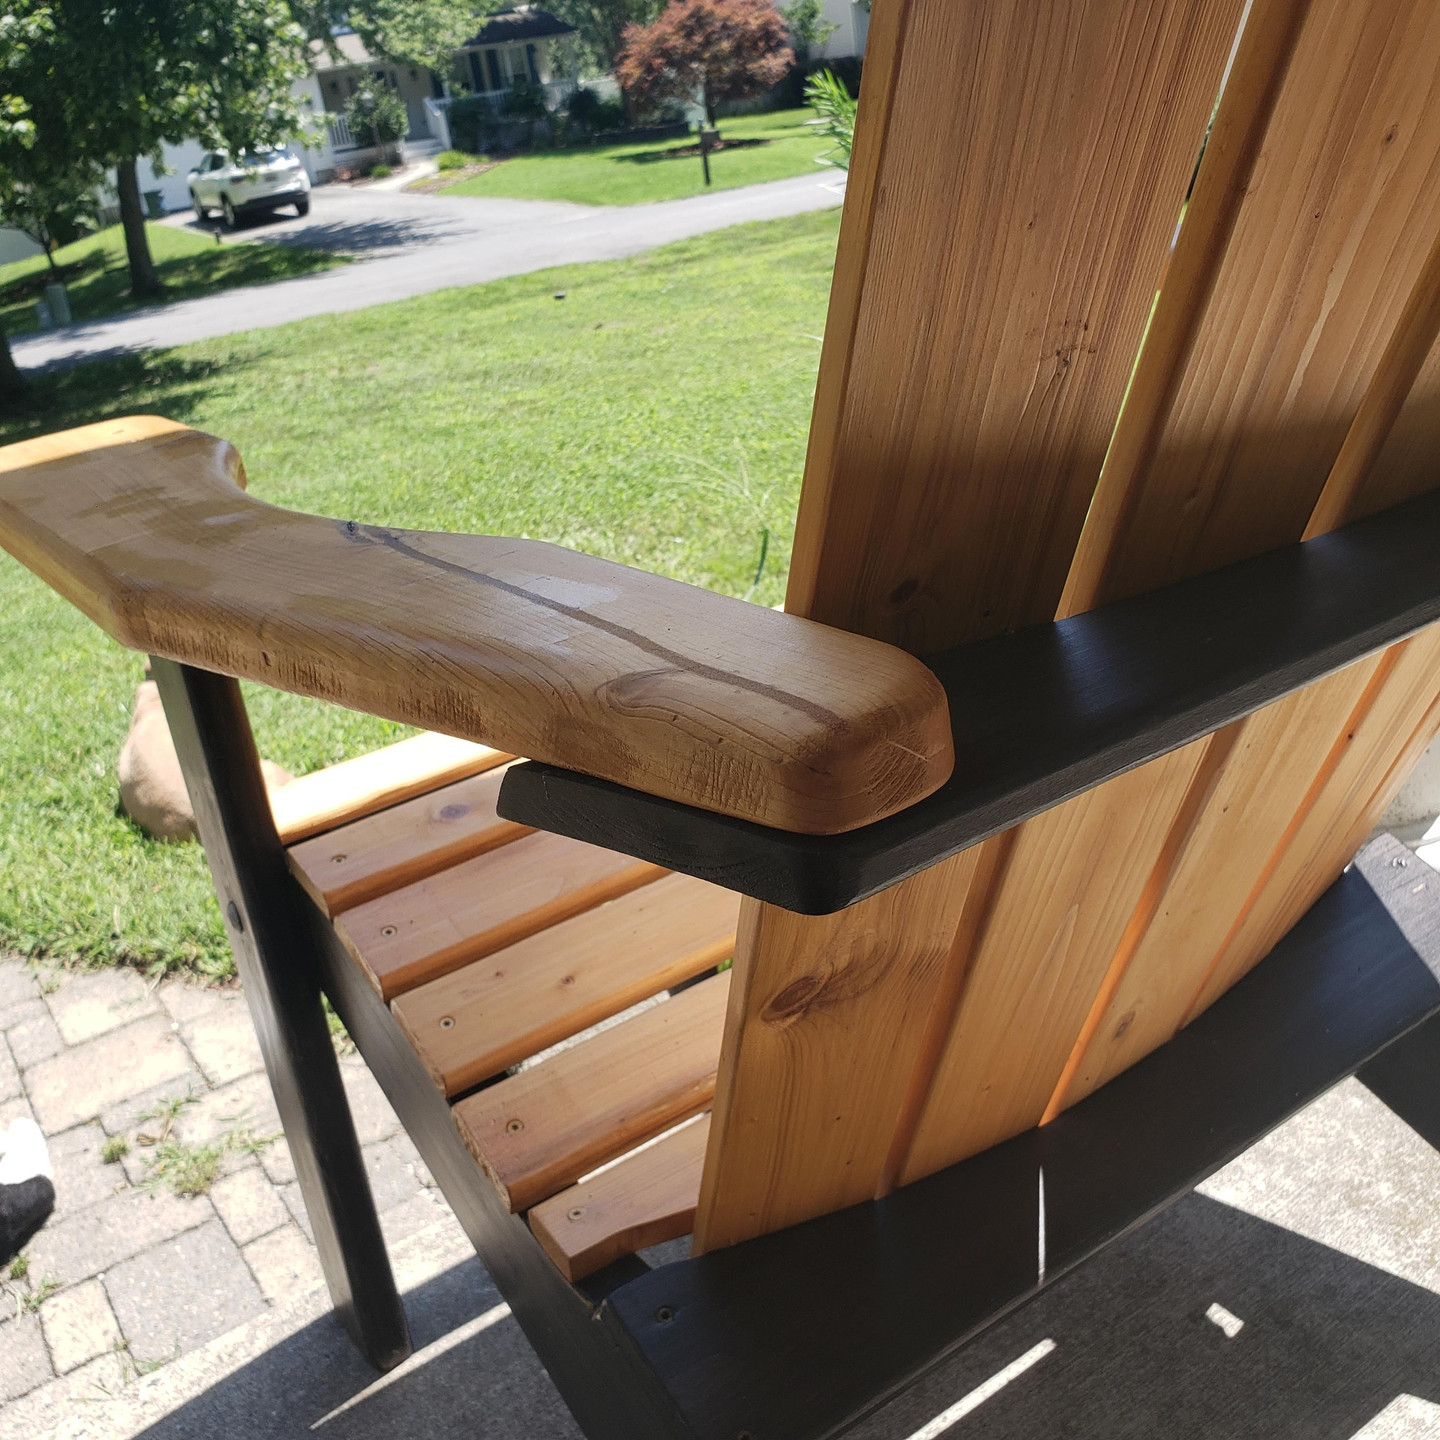 Stained two-toned Adirondack chair in summer oak and ebony